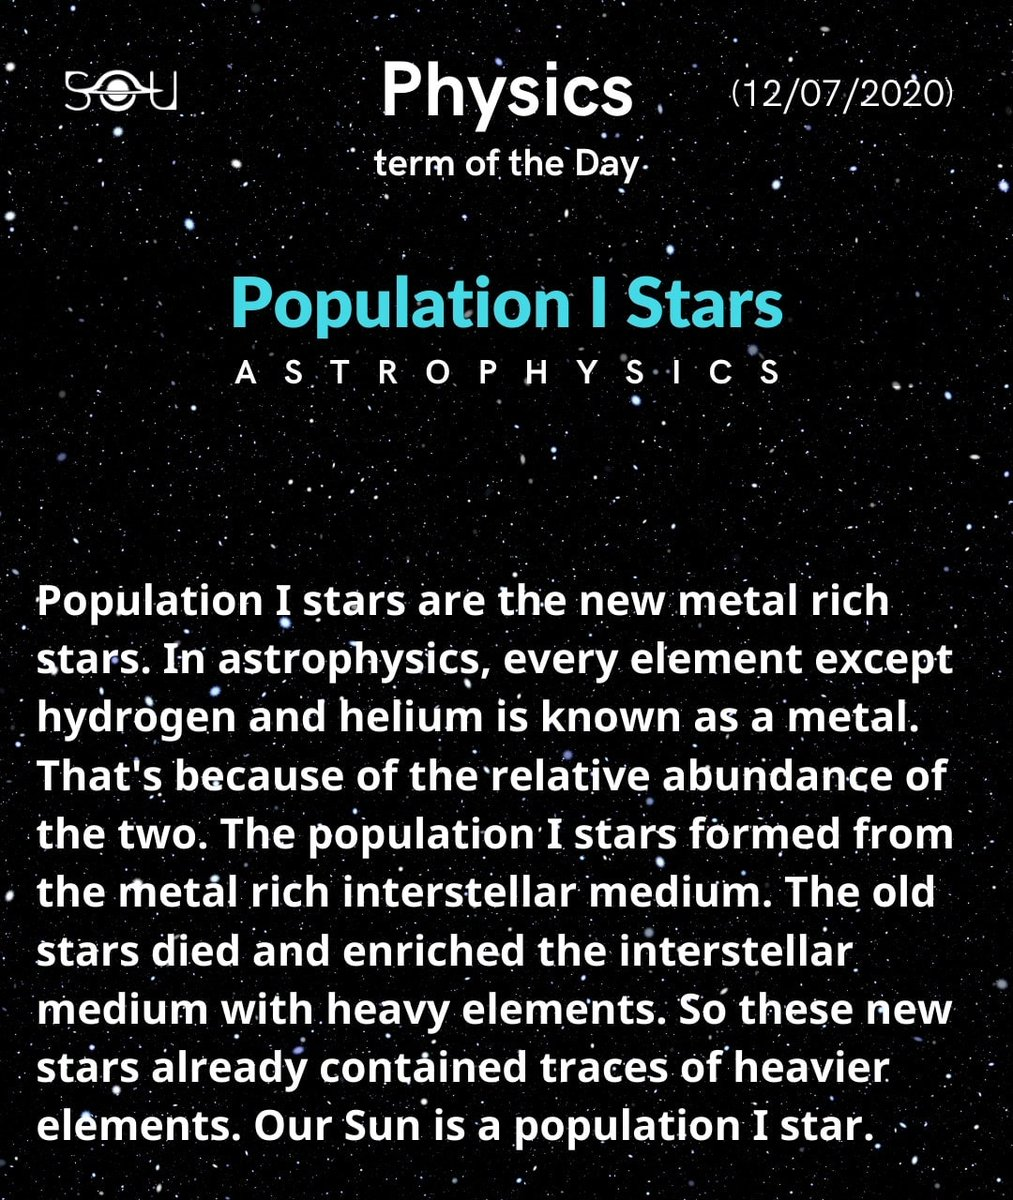 Physics Term Of The Day (12/07/2020)  #Astrophysics #Physics pic.twitter.com/D5On6UBcz7